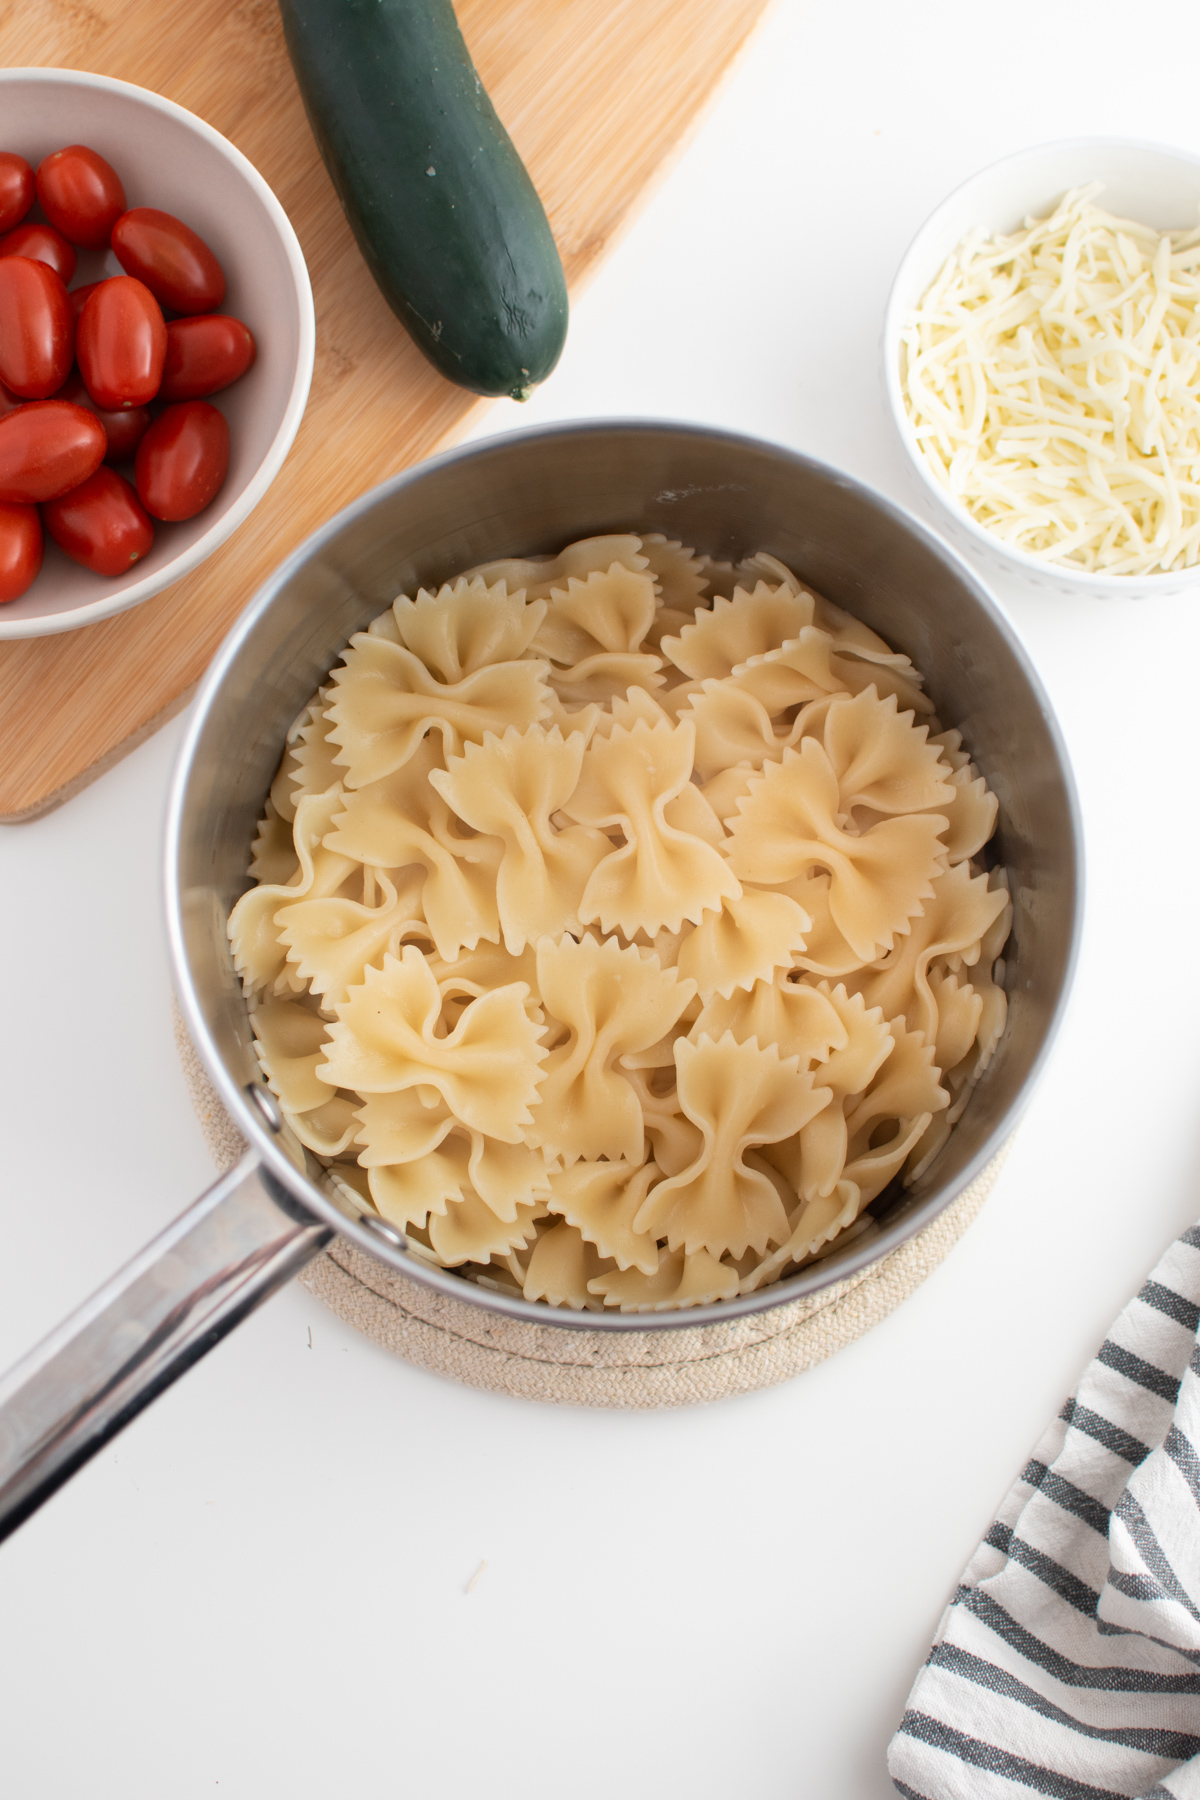 Cooked bowtie pasta in pot next to cucumber and a bowl of tomatoes and cheese.